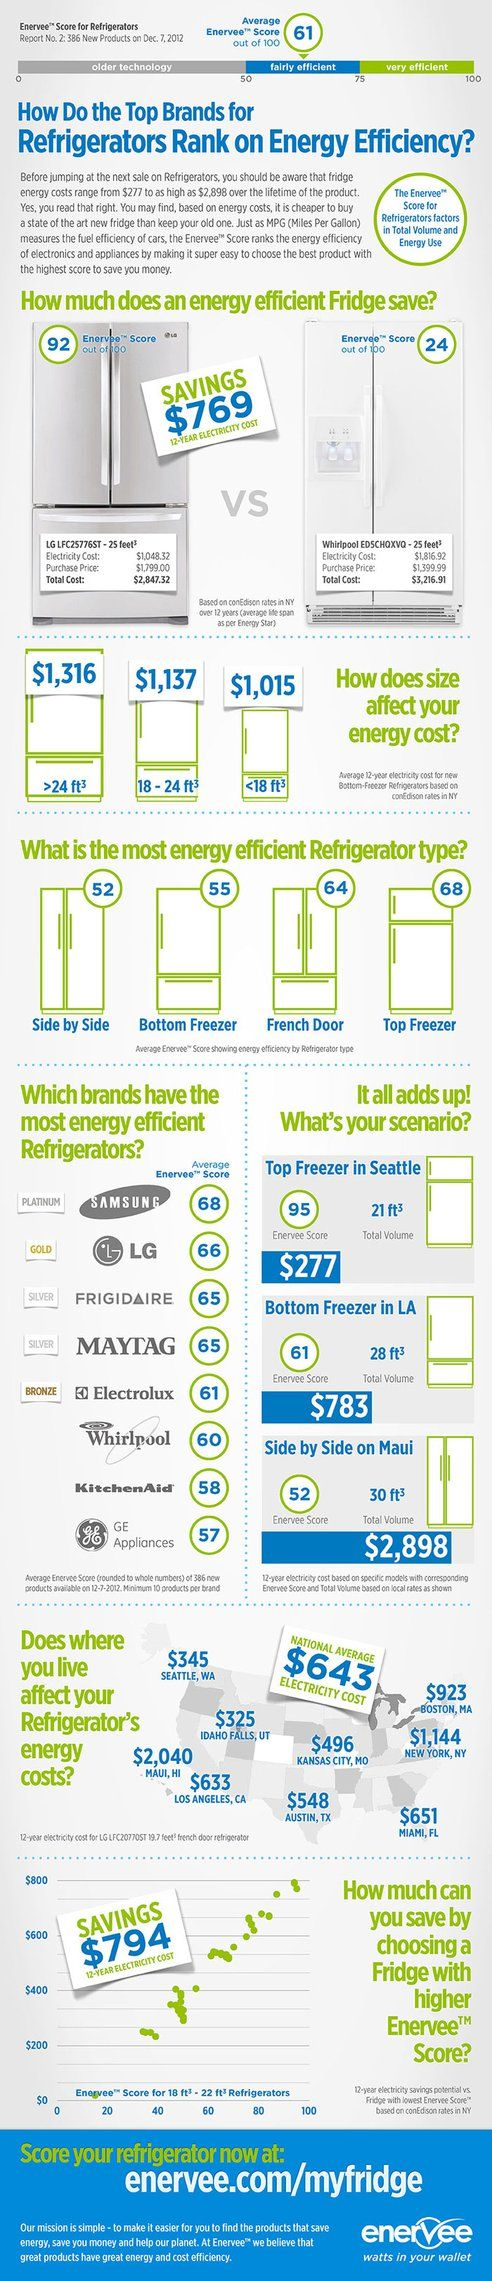 Samsung Leads Energy Efficiency Rankings for Refrigerators : TreeHugger